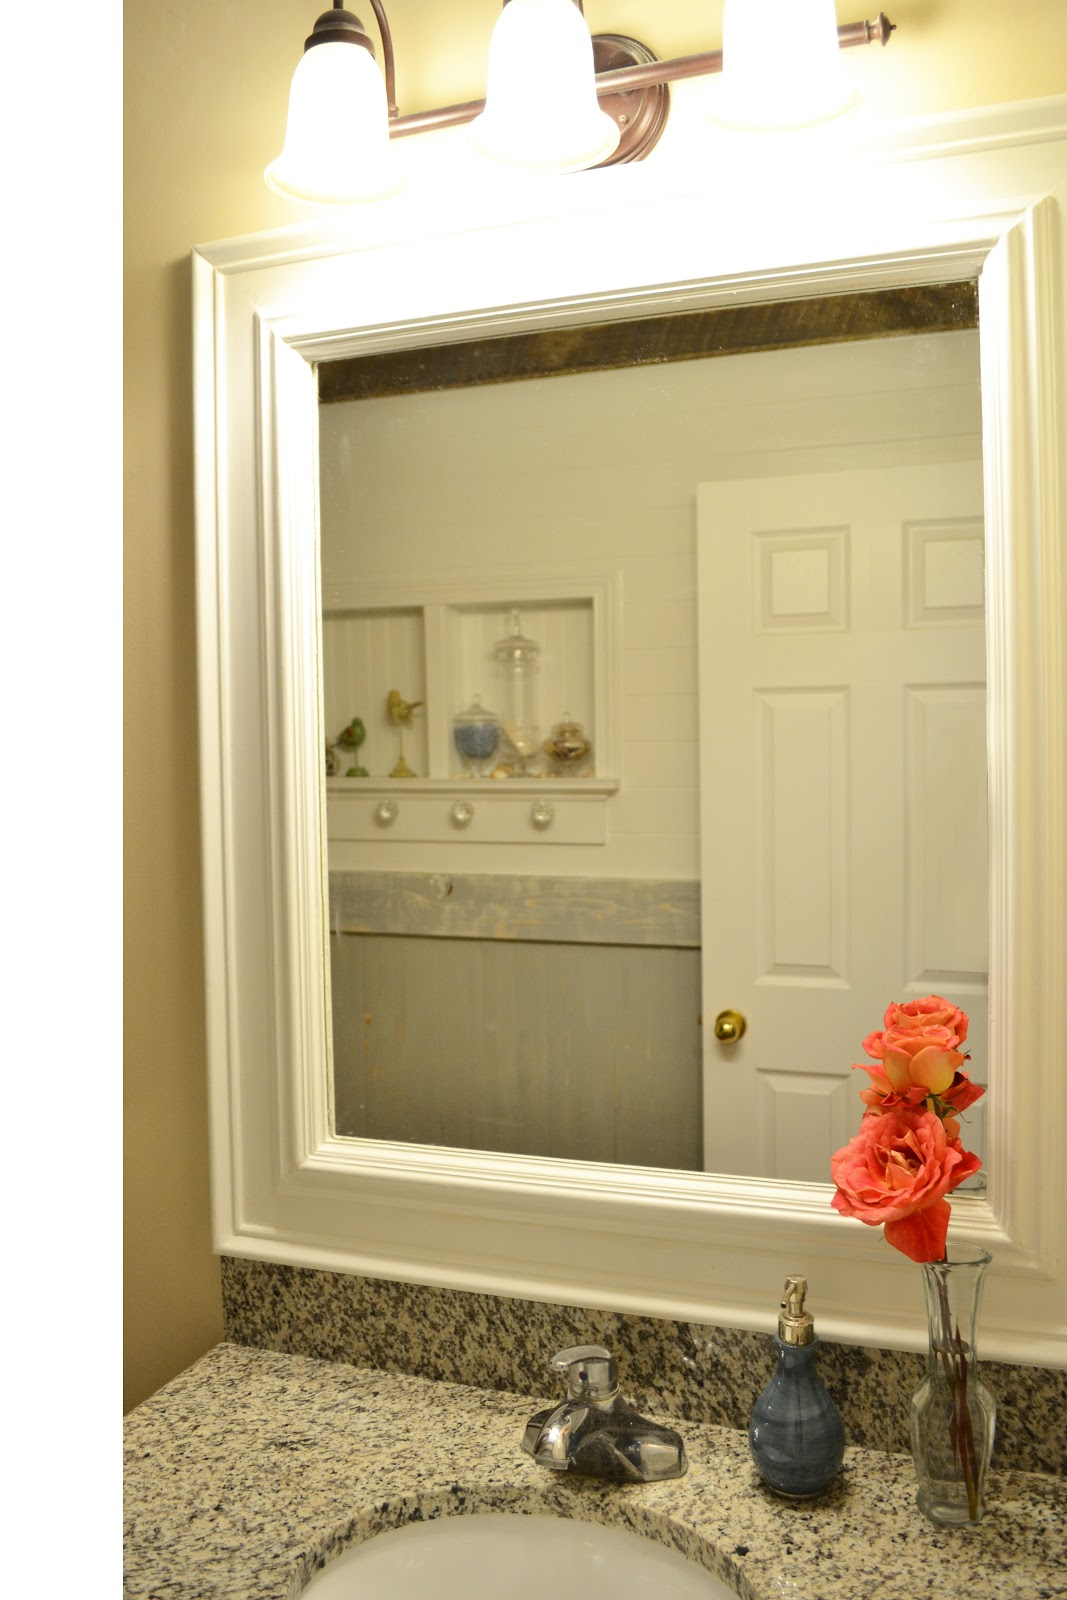 Deck out my home what you can do with 80 of trim - Frame bathroom mirror with moulding ...